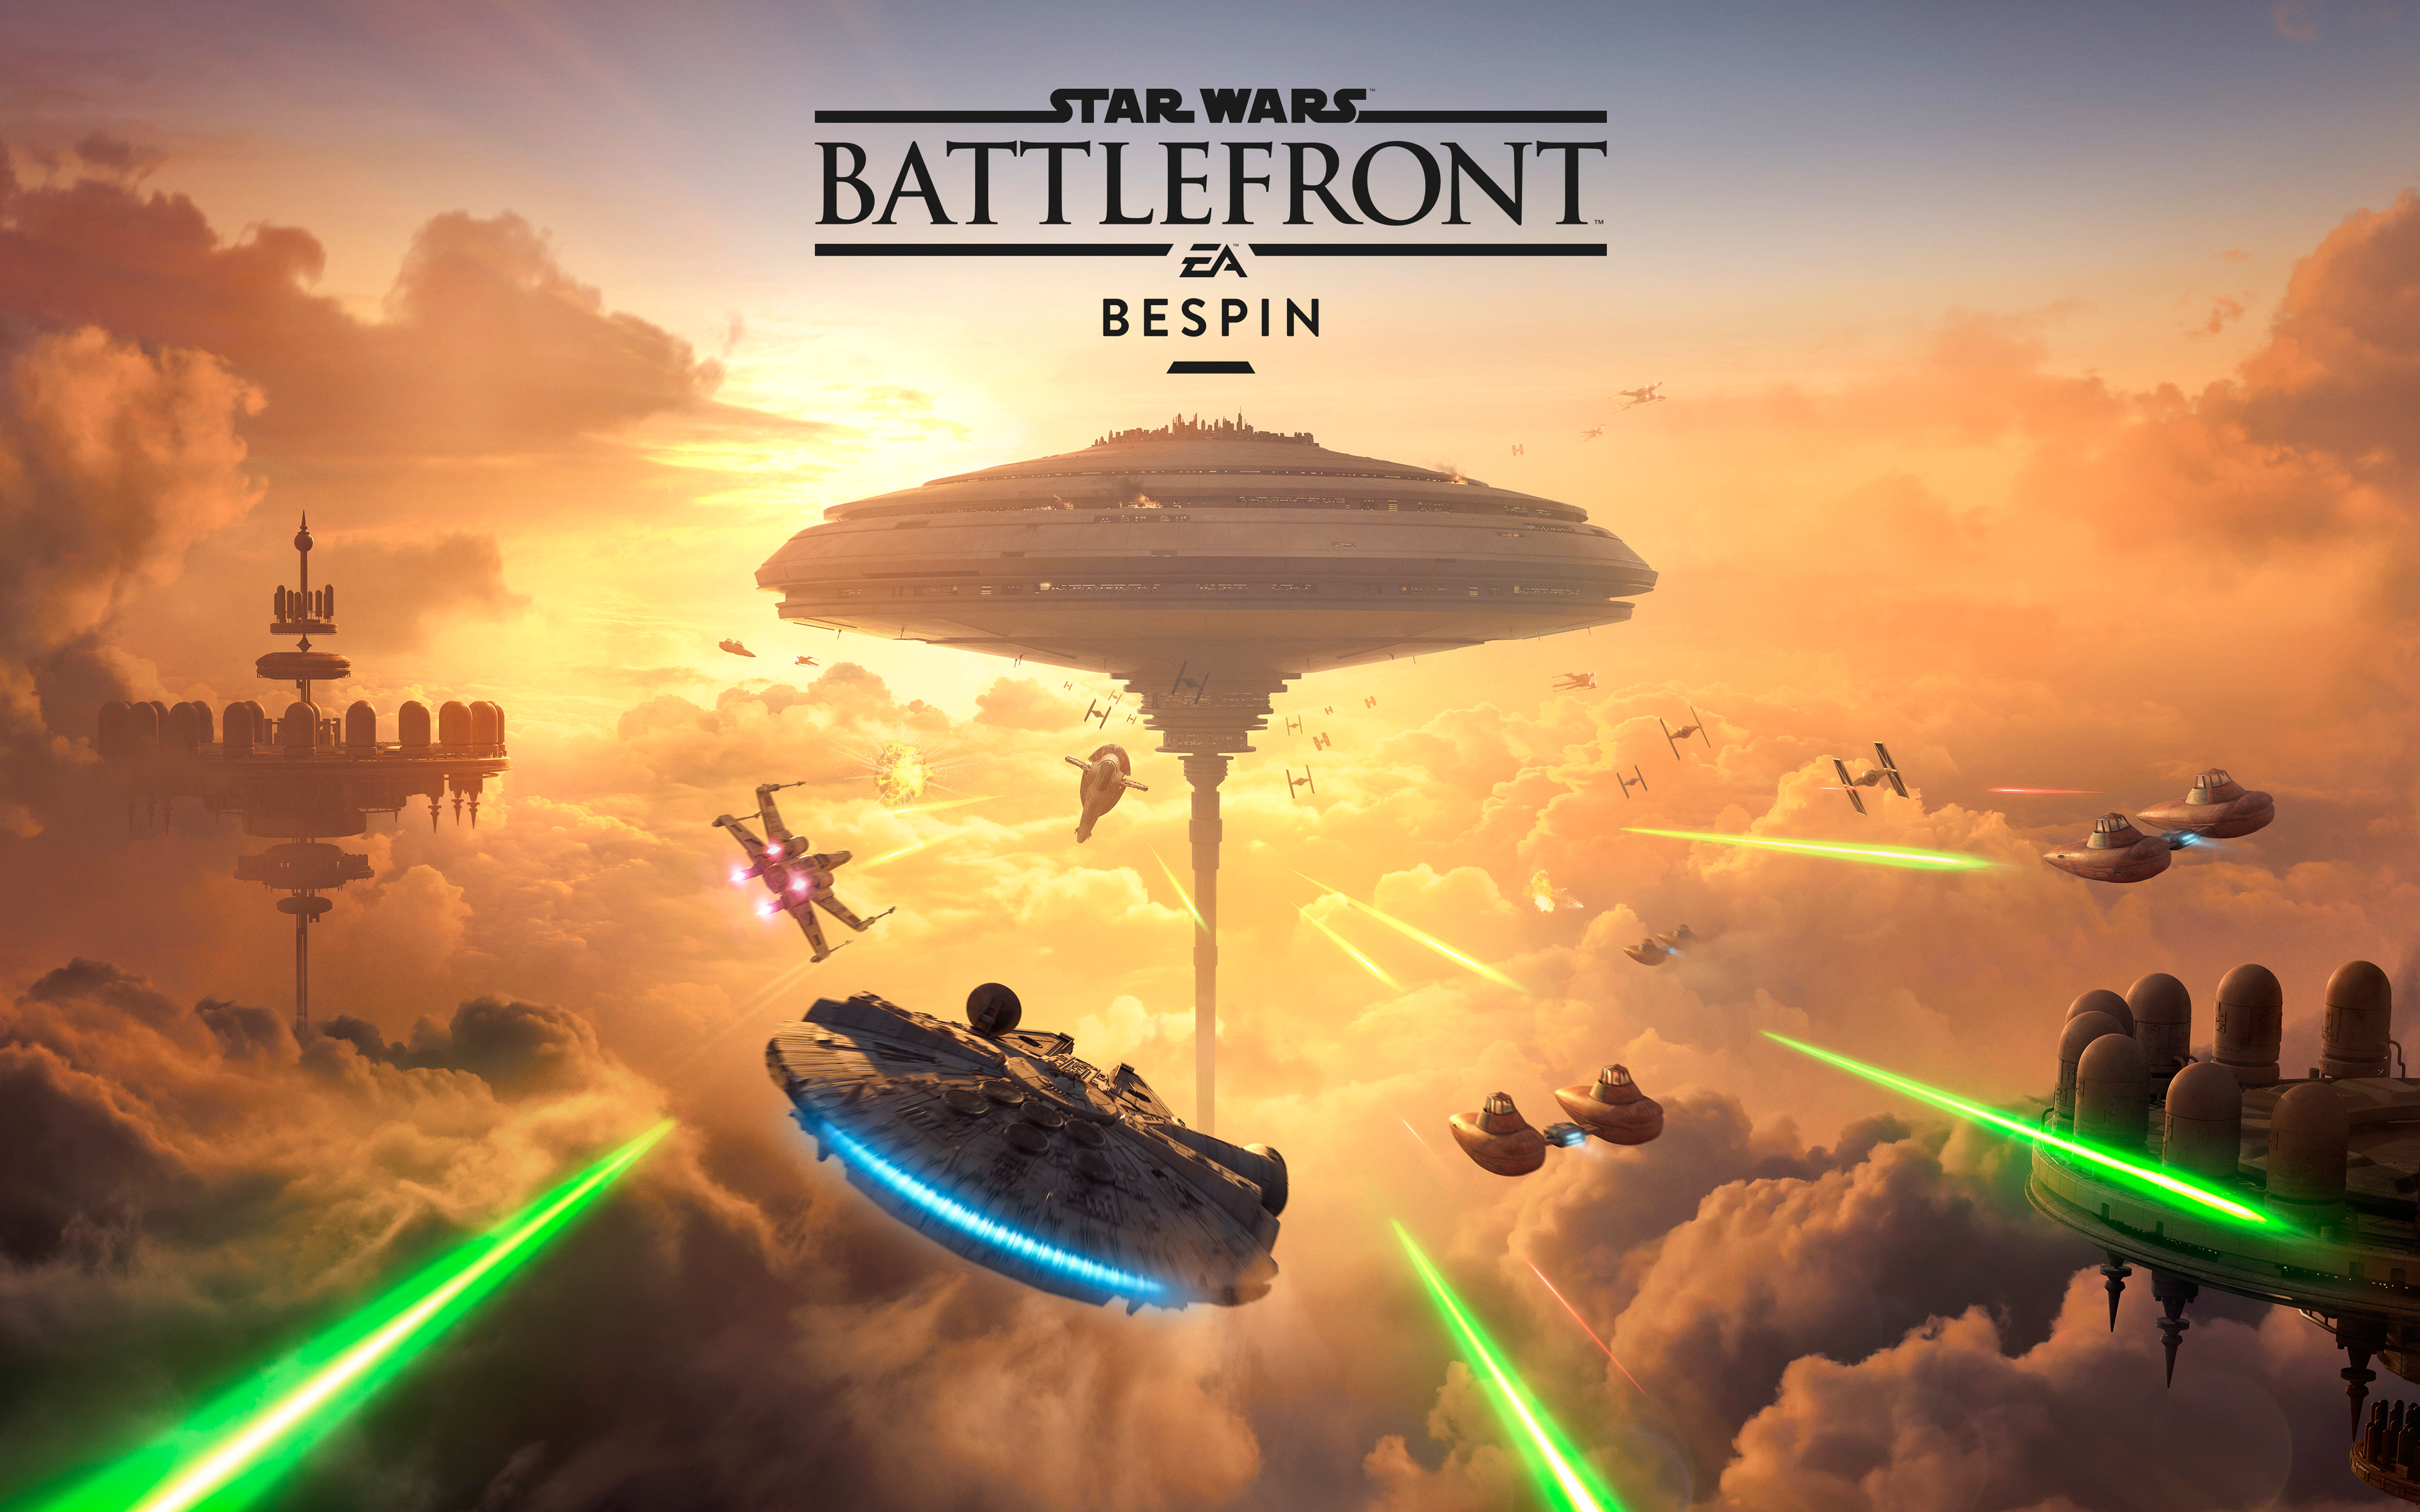 Star Wars Battlefront Bespin DLC 5K 4K wallpaper 3840x2400